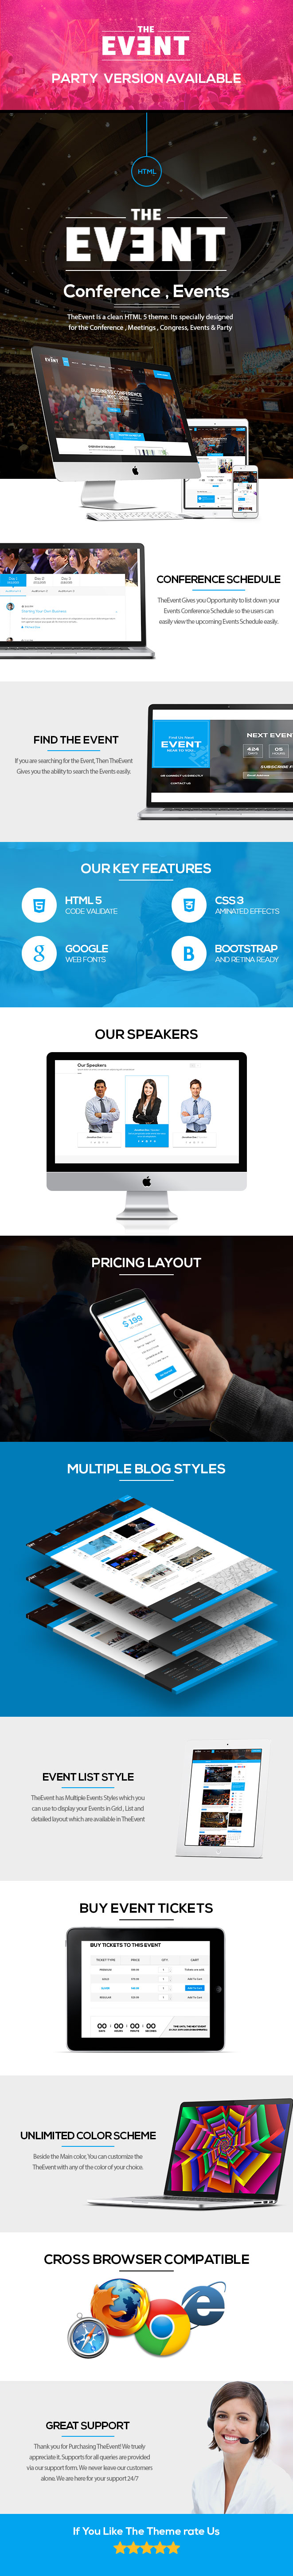 TheEvent - Conference Event Management